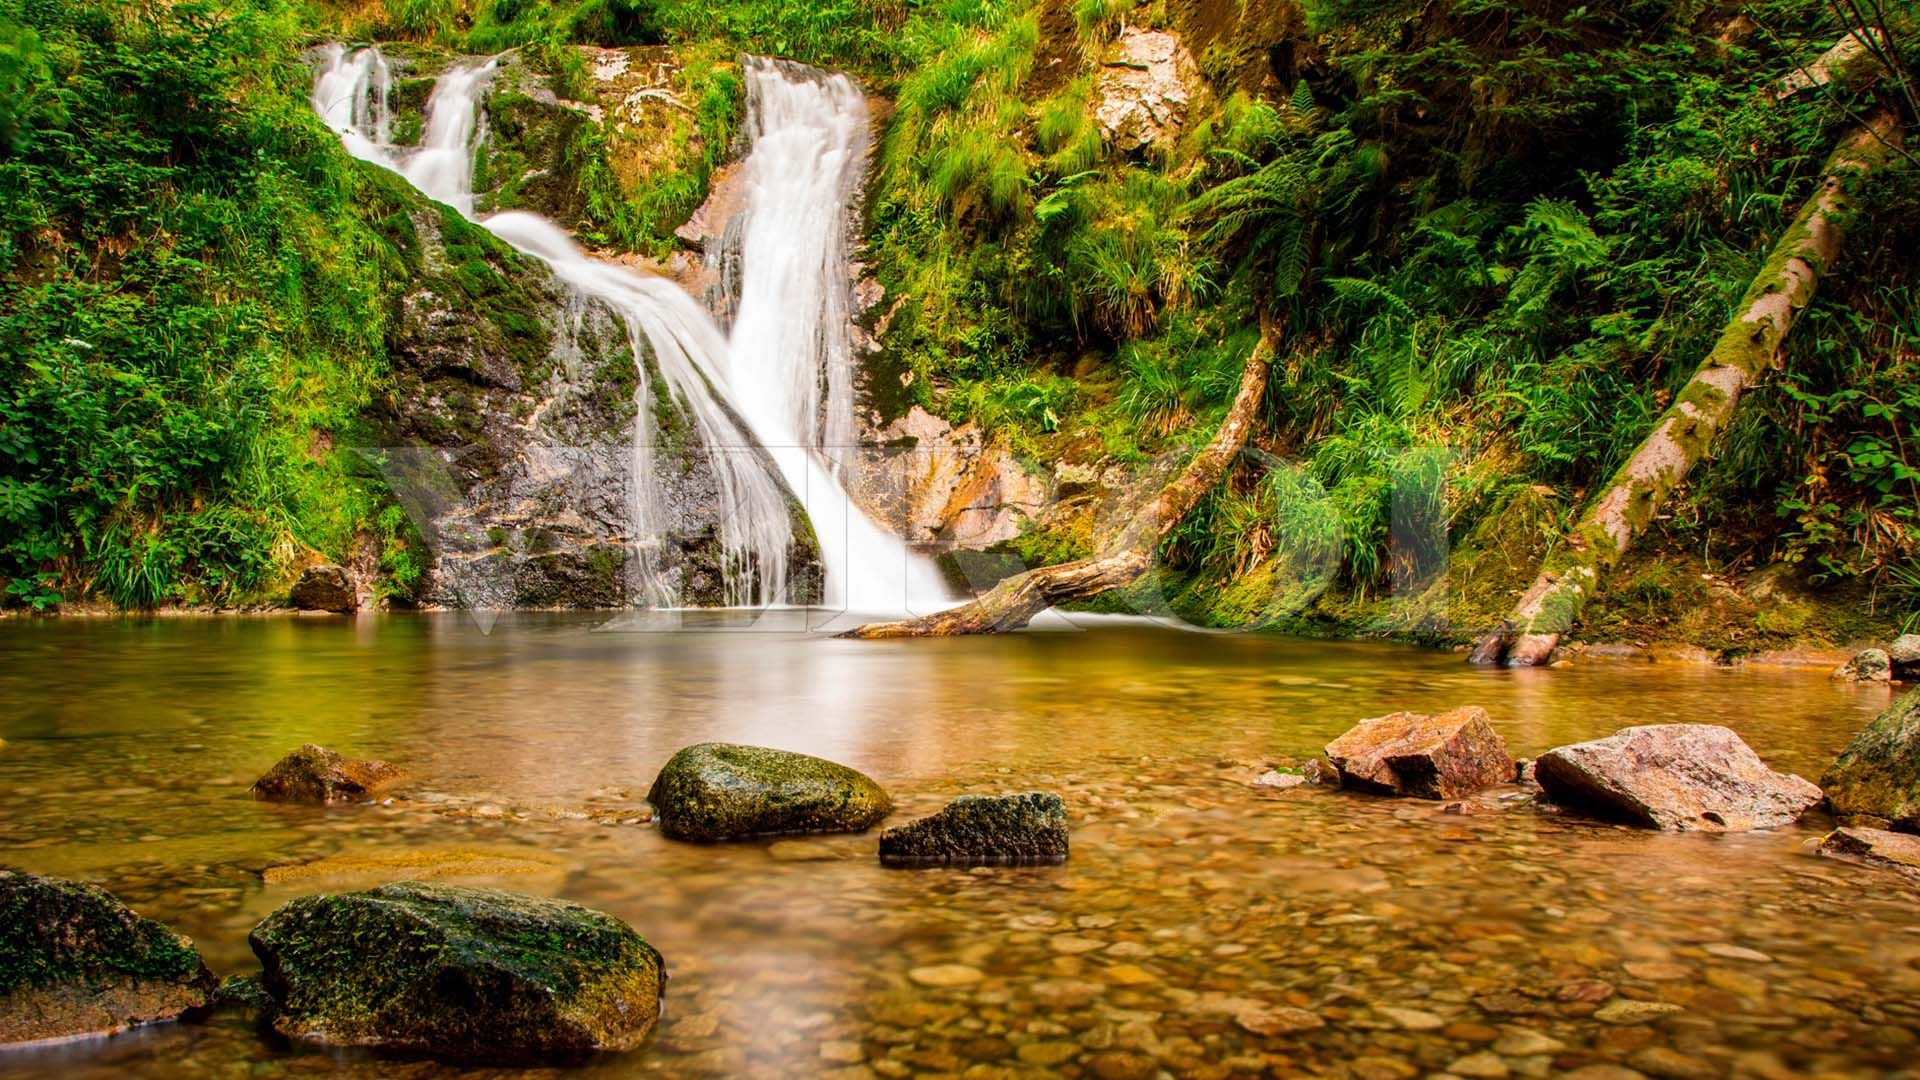 Pictures Of Mountain Streams And Waterfalls